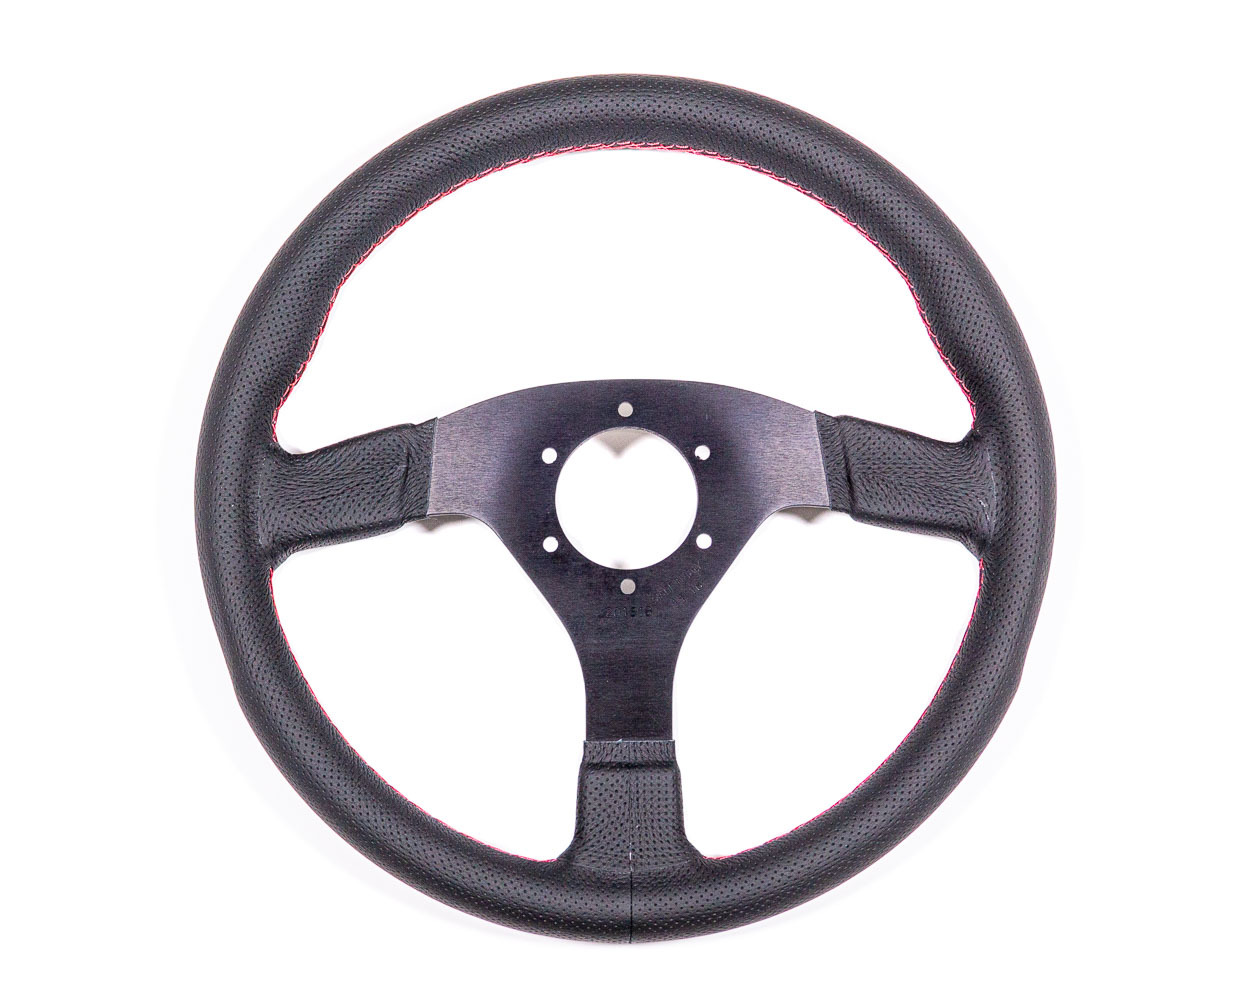 Sparco 015TSDPLRS Steering Wheel, Strada, 350 mm Diameter, 3-Spoke, 39 mm Dish, Leather Grip, Aluminum, Black Anodize, Each